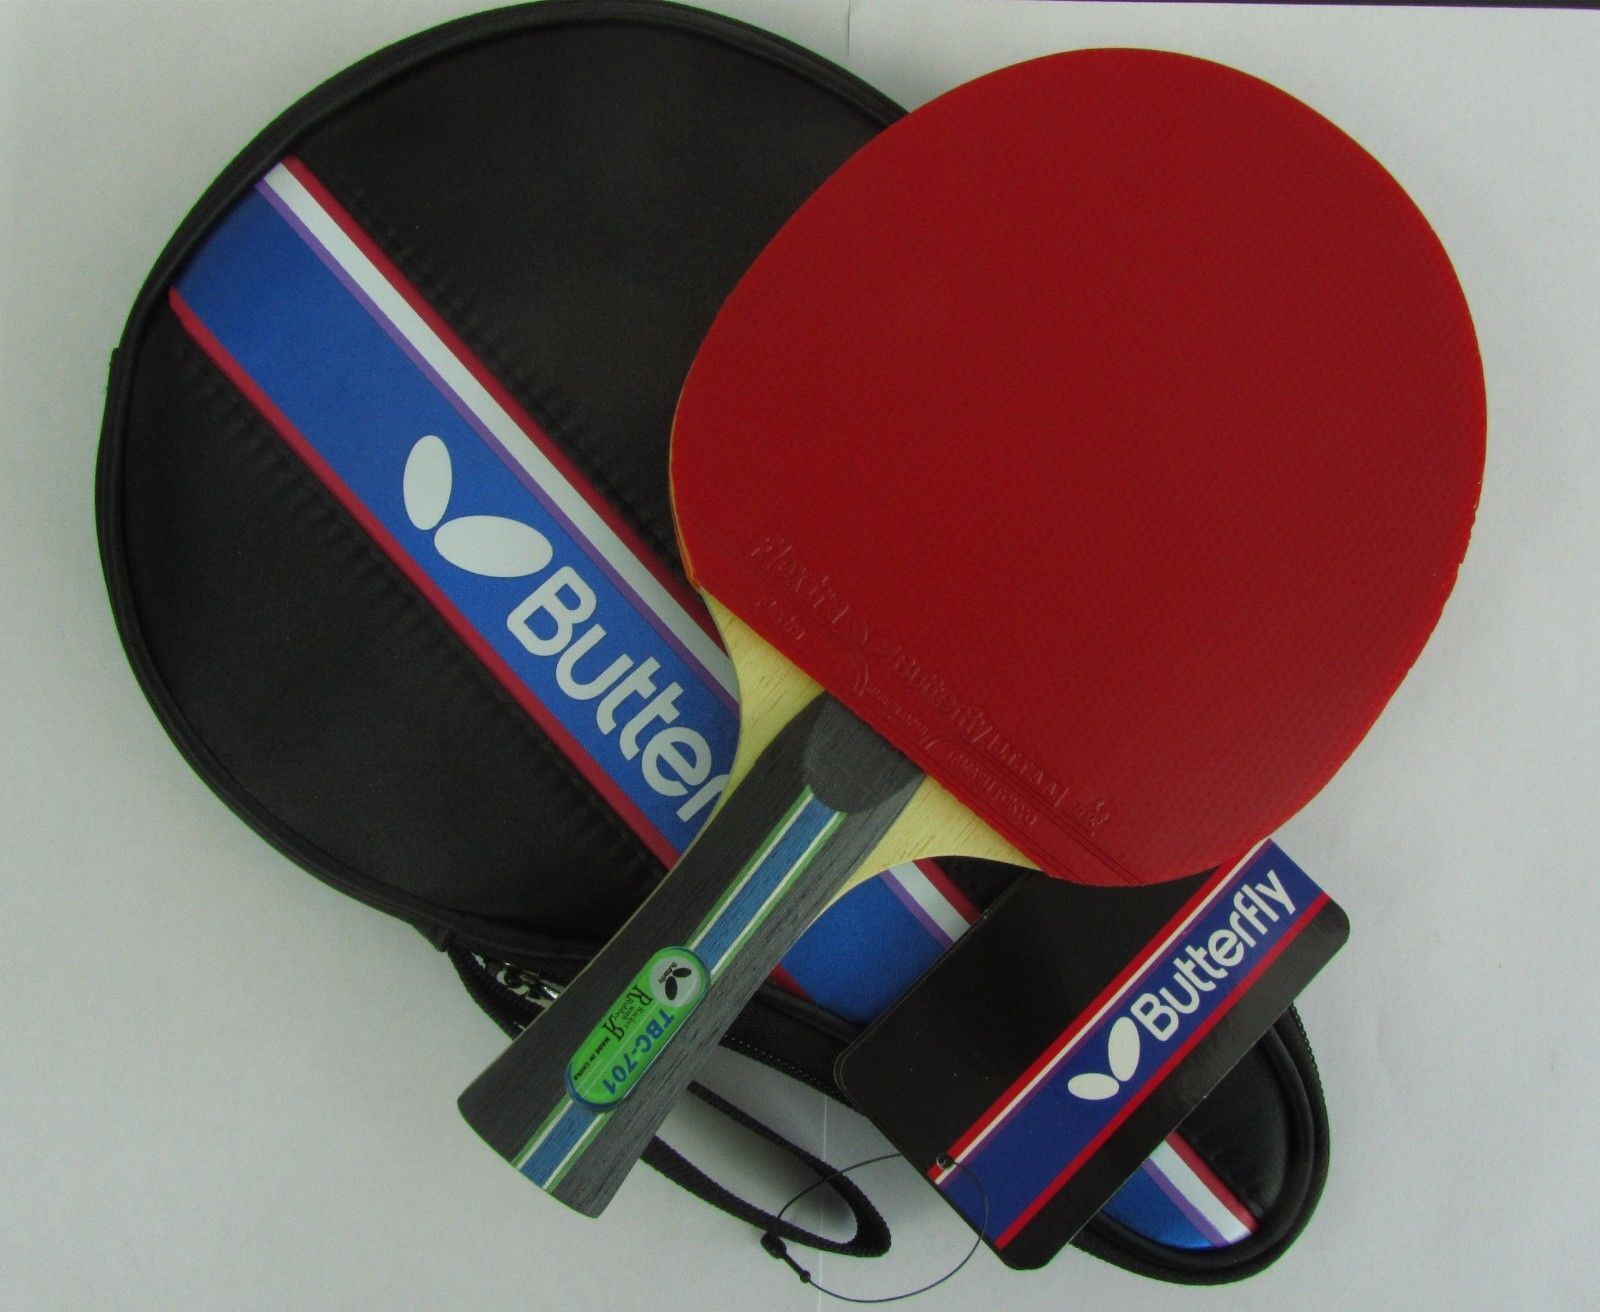 Butterfly TBC701 TBC-701 Table Tennis Paddle  Bat, w  Case, 2 side Pips-in, UK